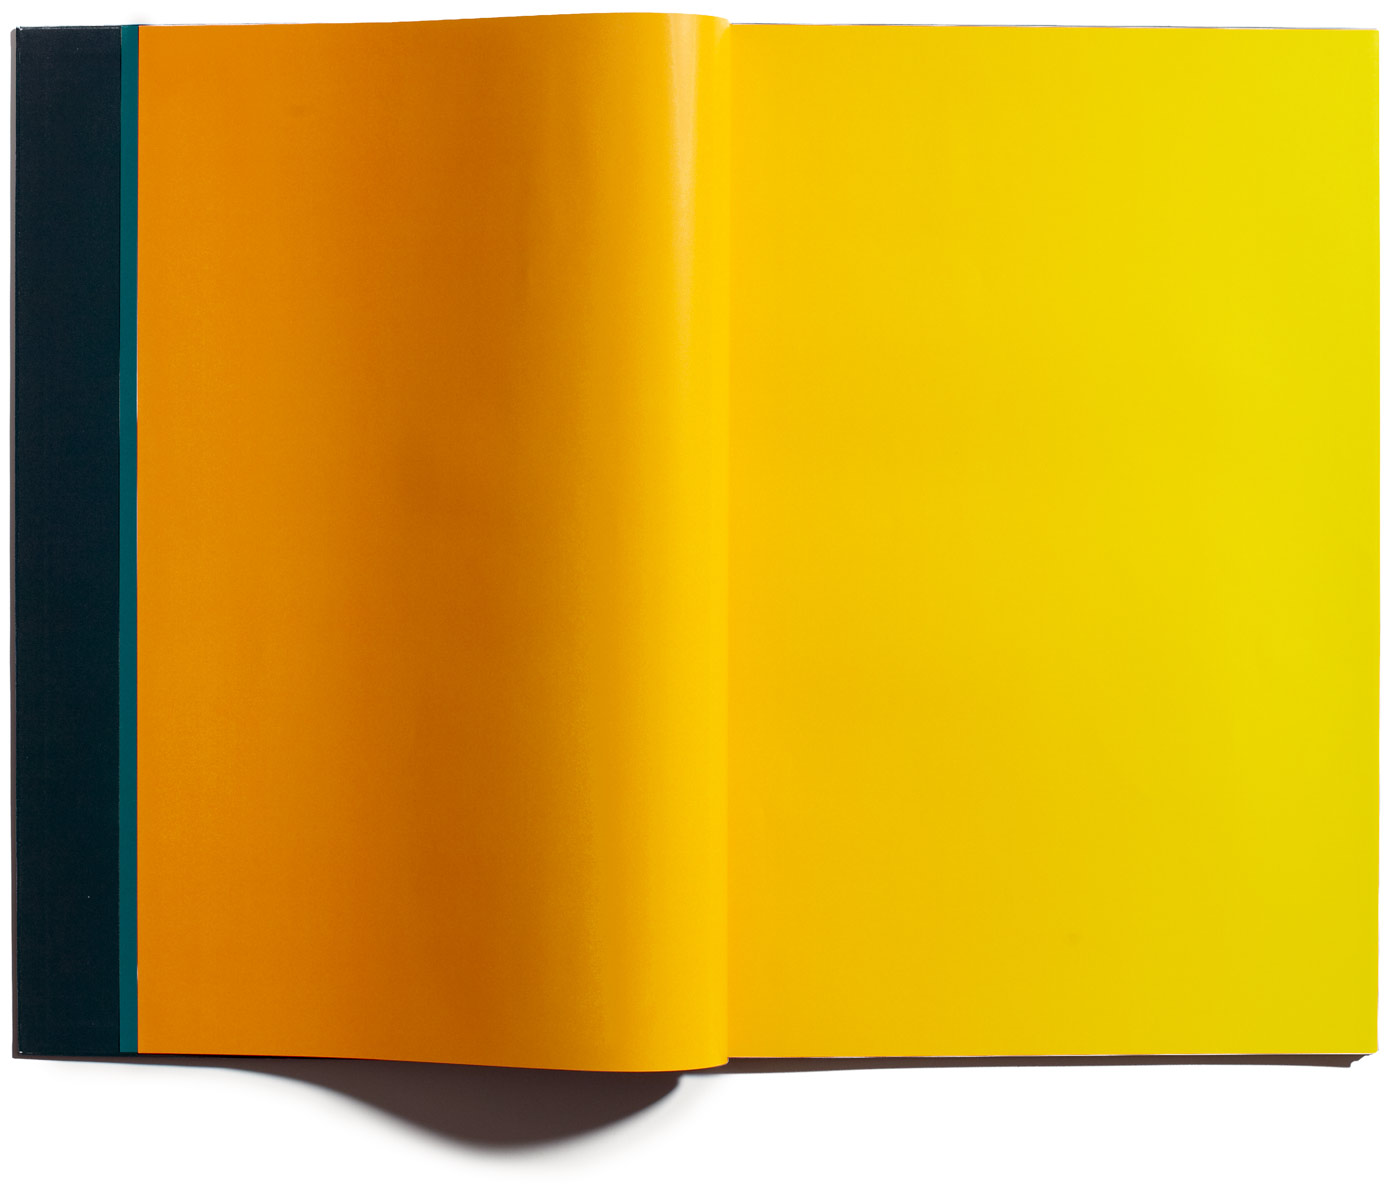 Browns Editions, Browns Editions Publishing, Browns Editions Books, Browns Editions Bruce Gilden, Browns Editions Only God Can Judge Me, Browns Editions Bruce Gilden Only God Can Judge Me